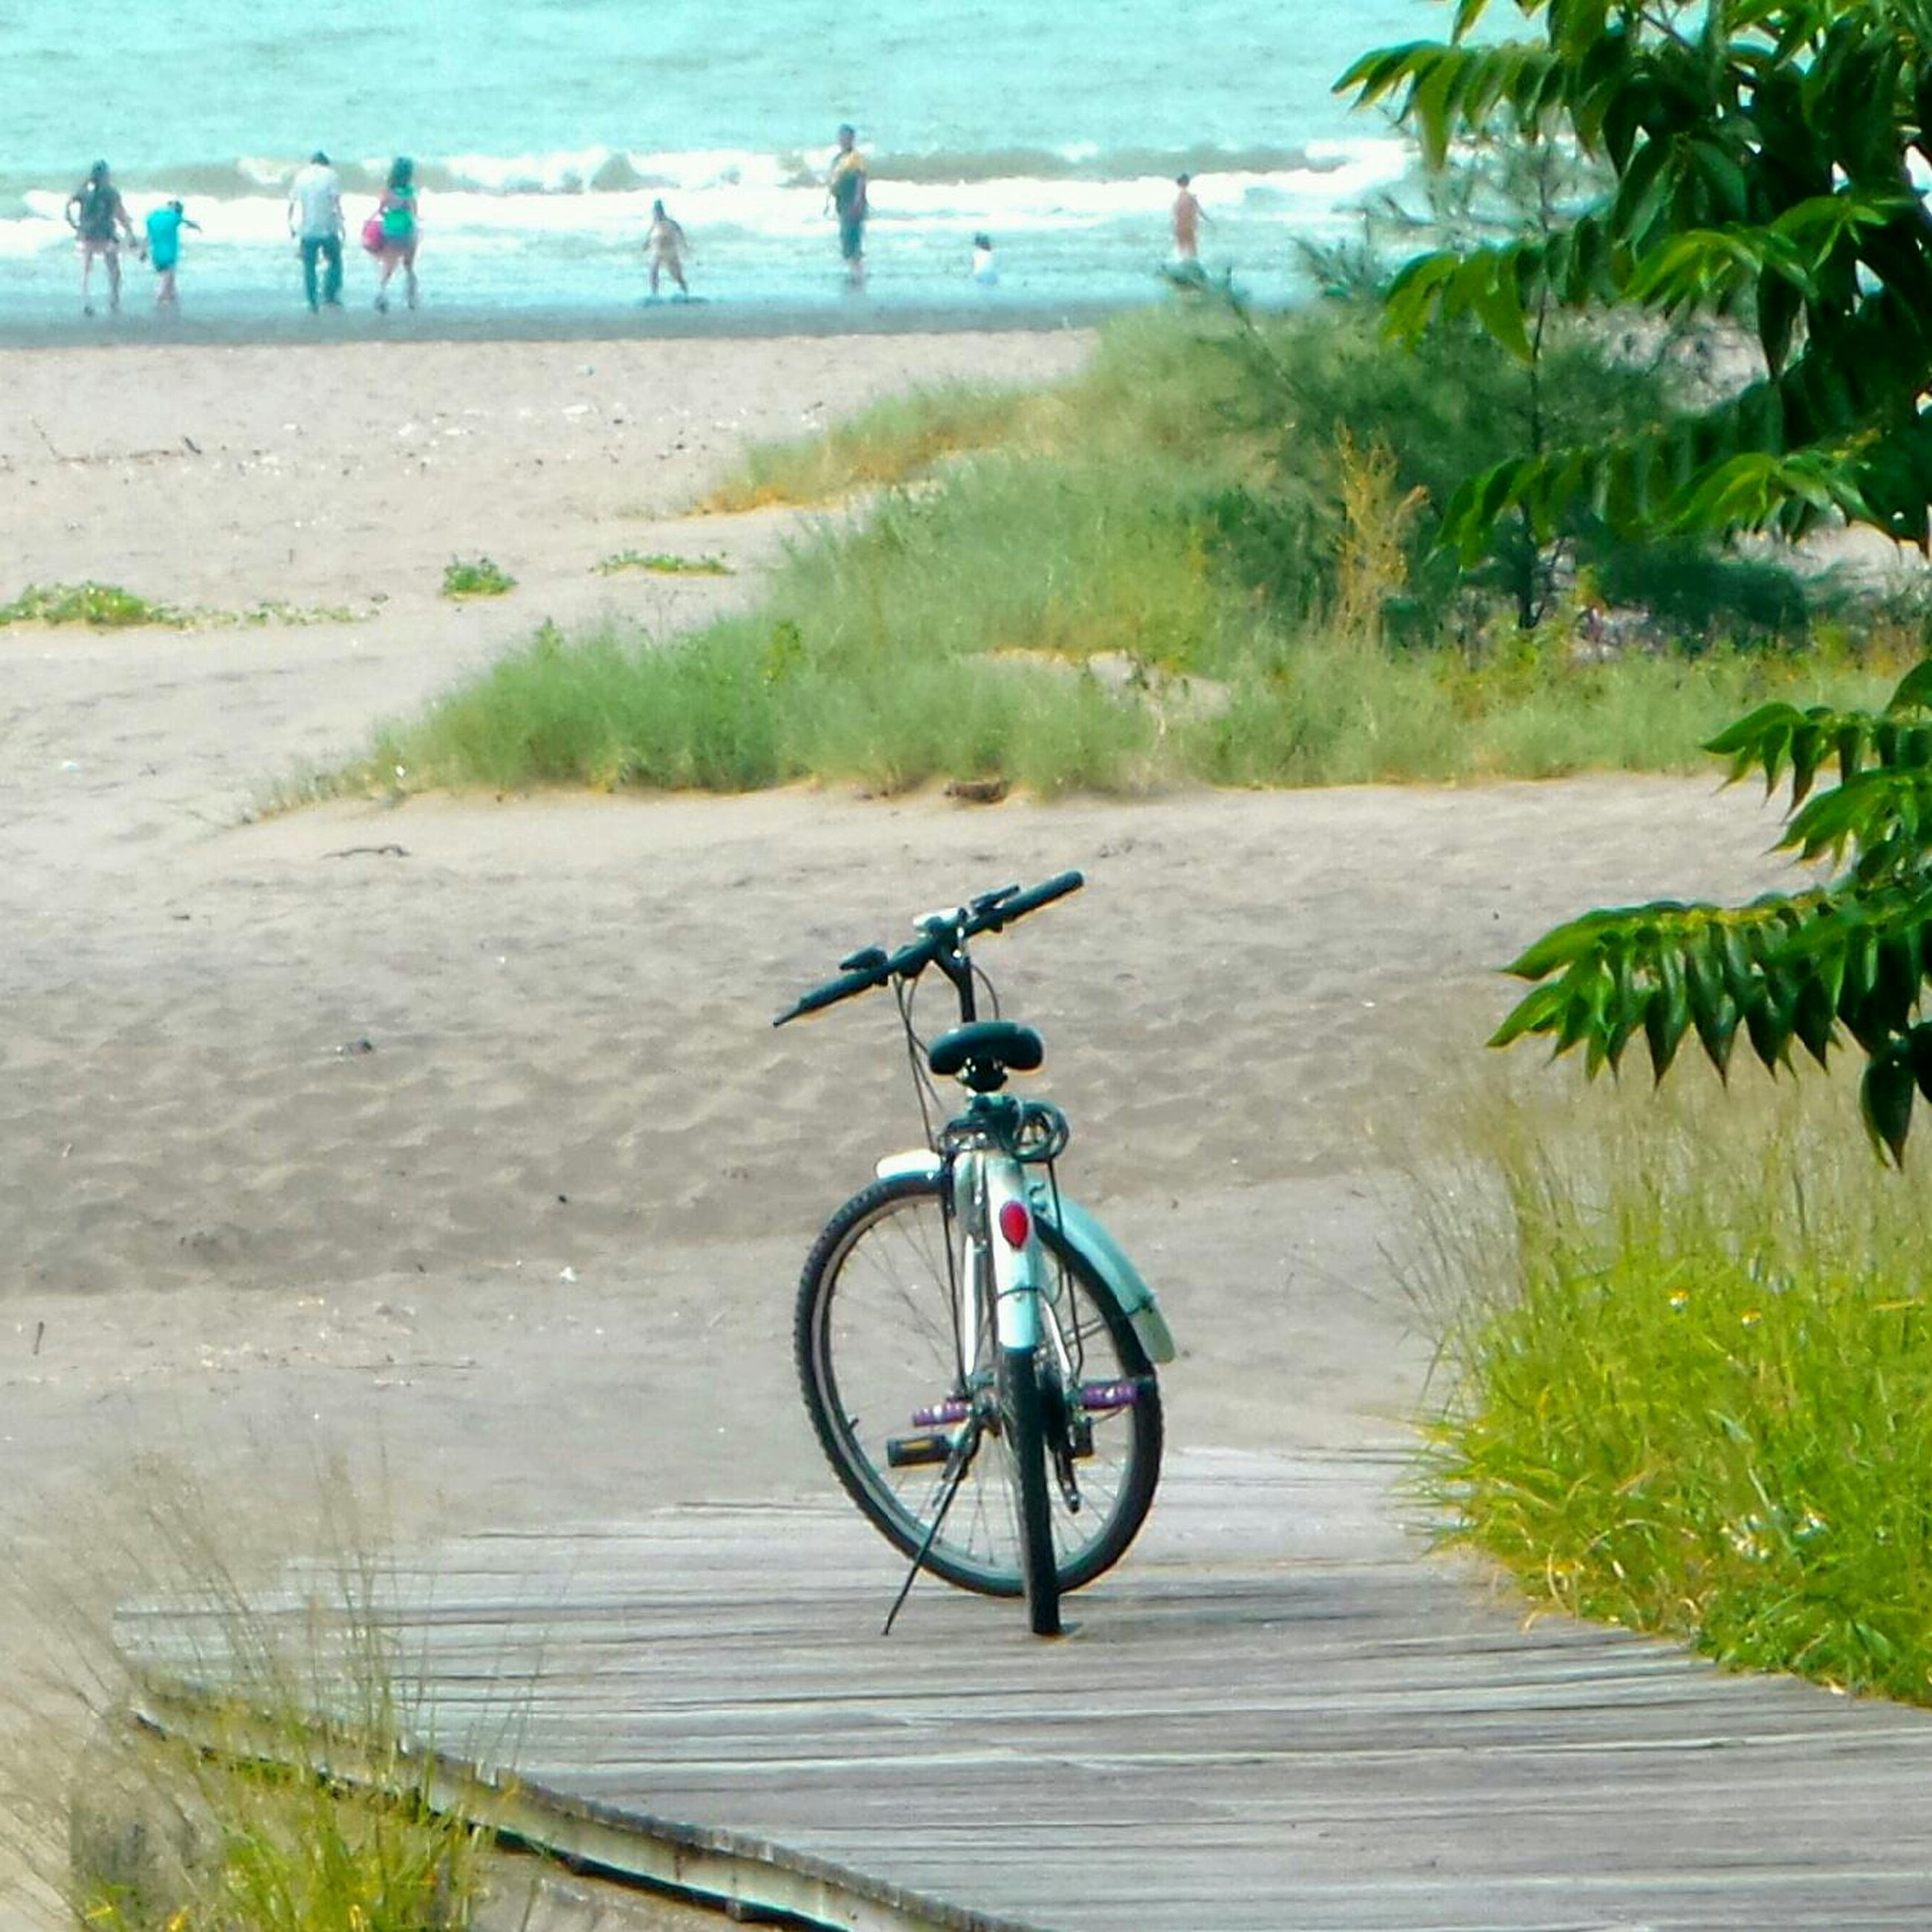 bicycle, beach, sand, transportation, mode of transport, water, sea, leisure activity, tree, lifestyles, vacations, tranquility, men, grass, land vehicle, shore, nature, travel, day